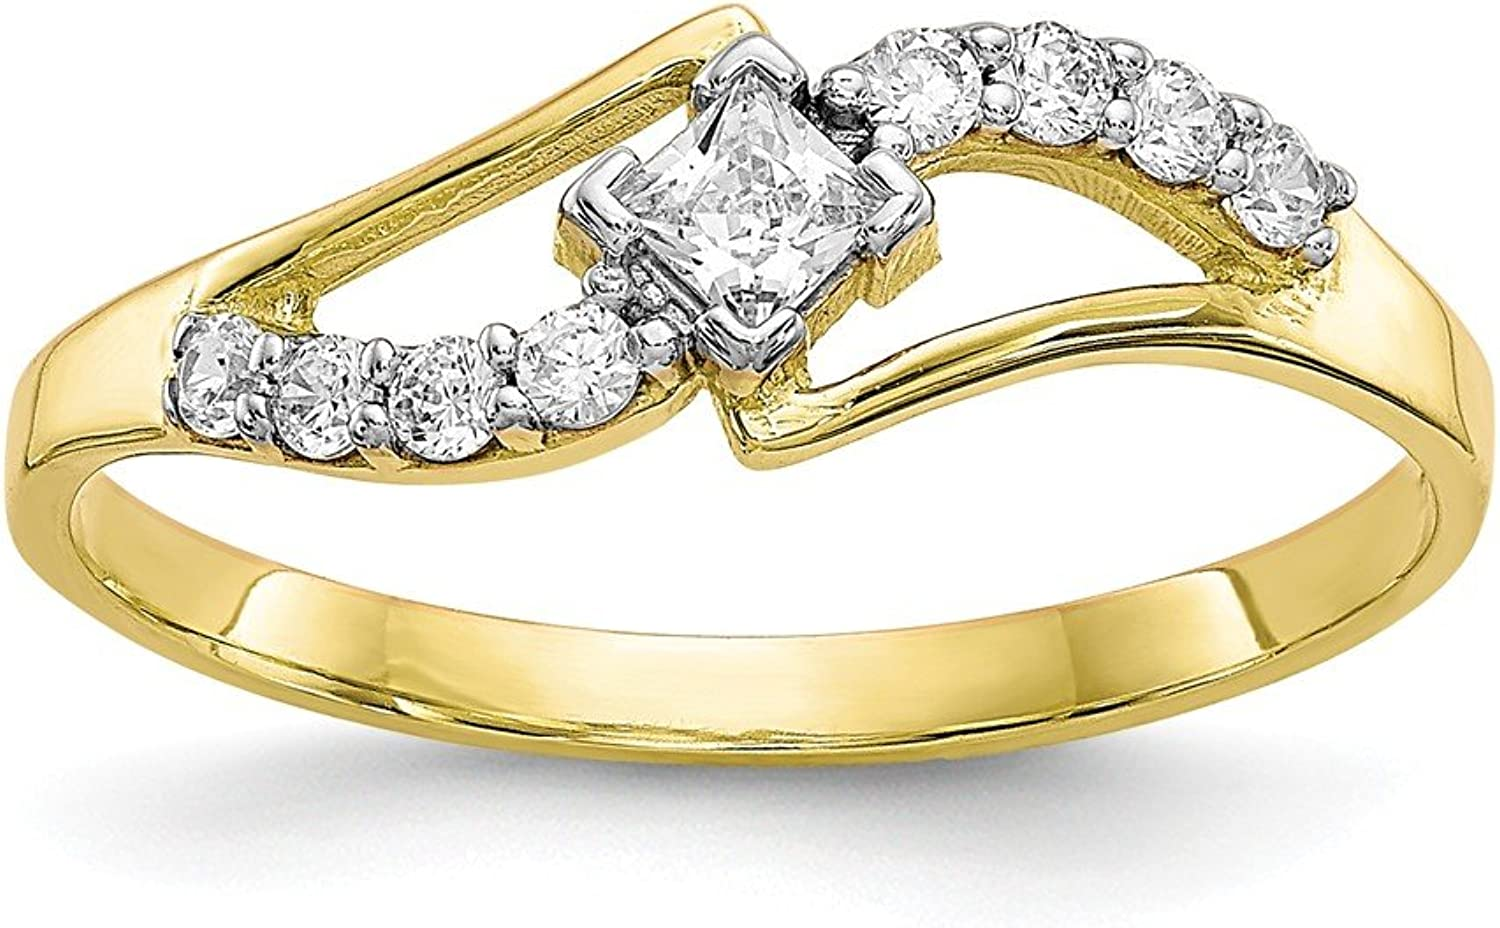 Beautiful Yellow gold 10K Yellowgold 10k CZ Ring